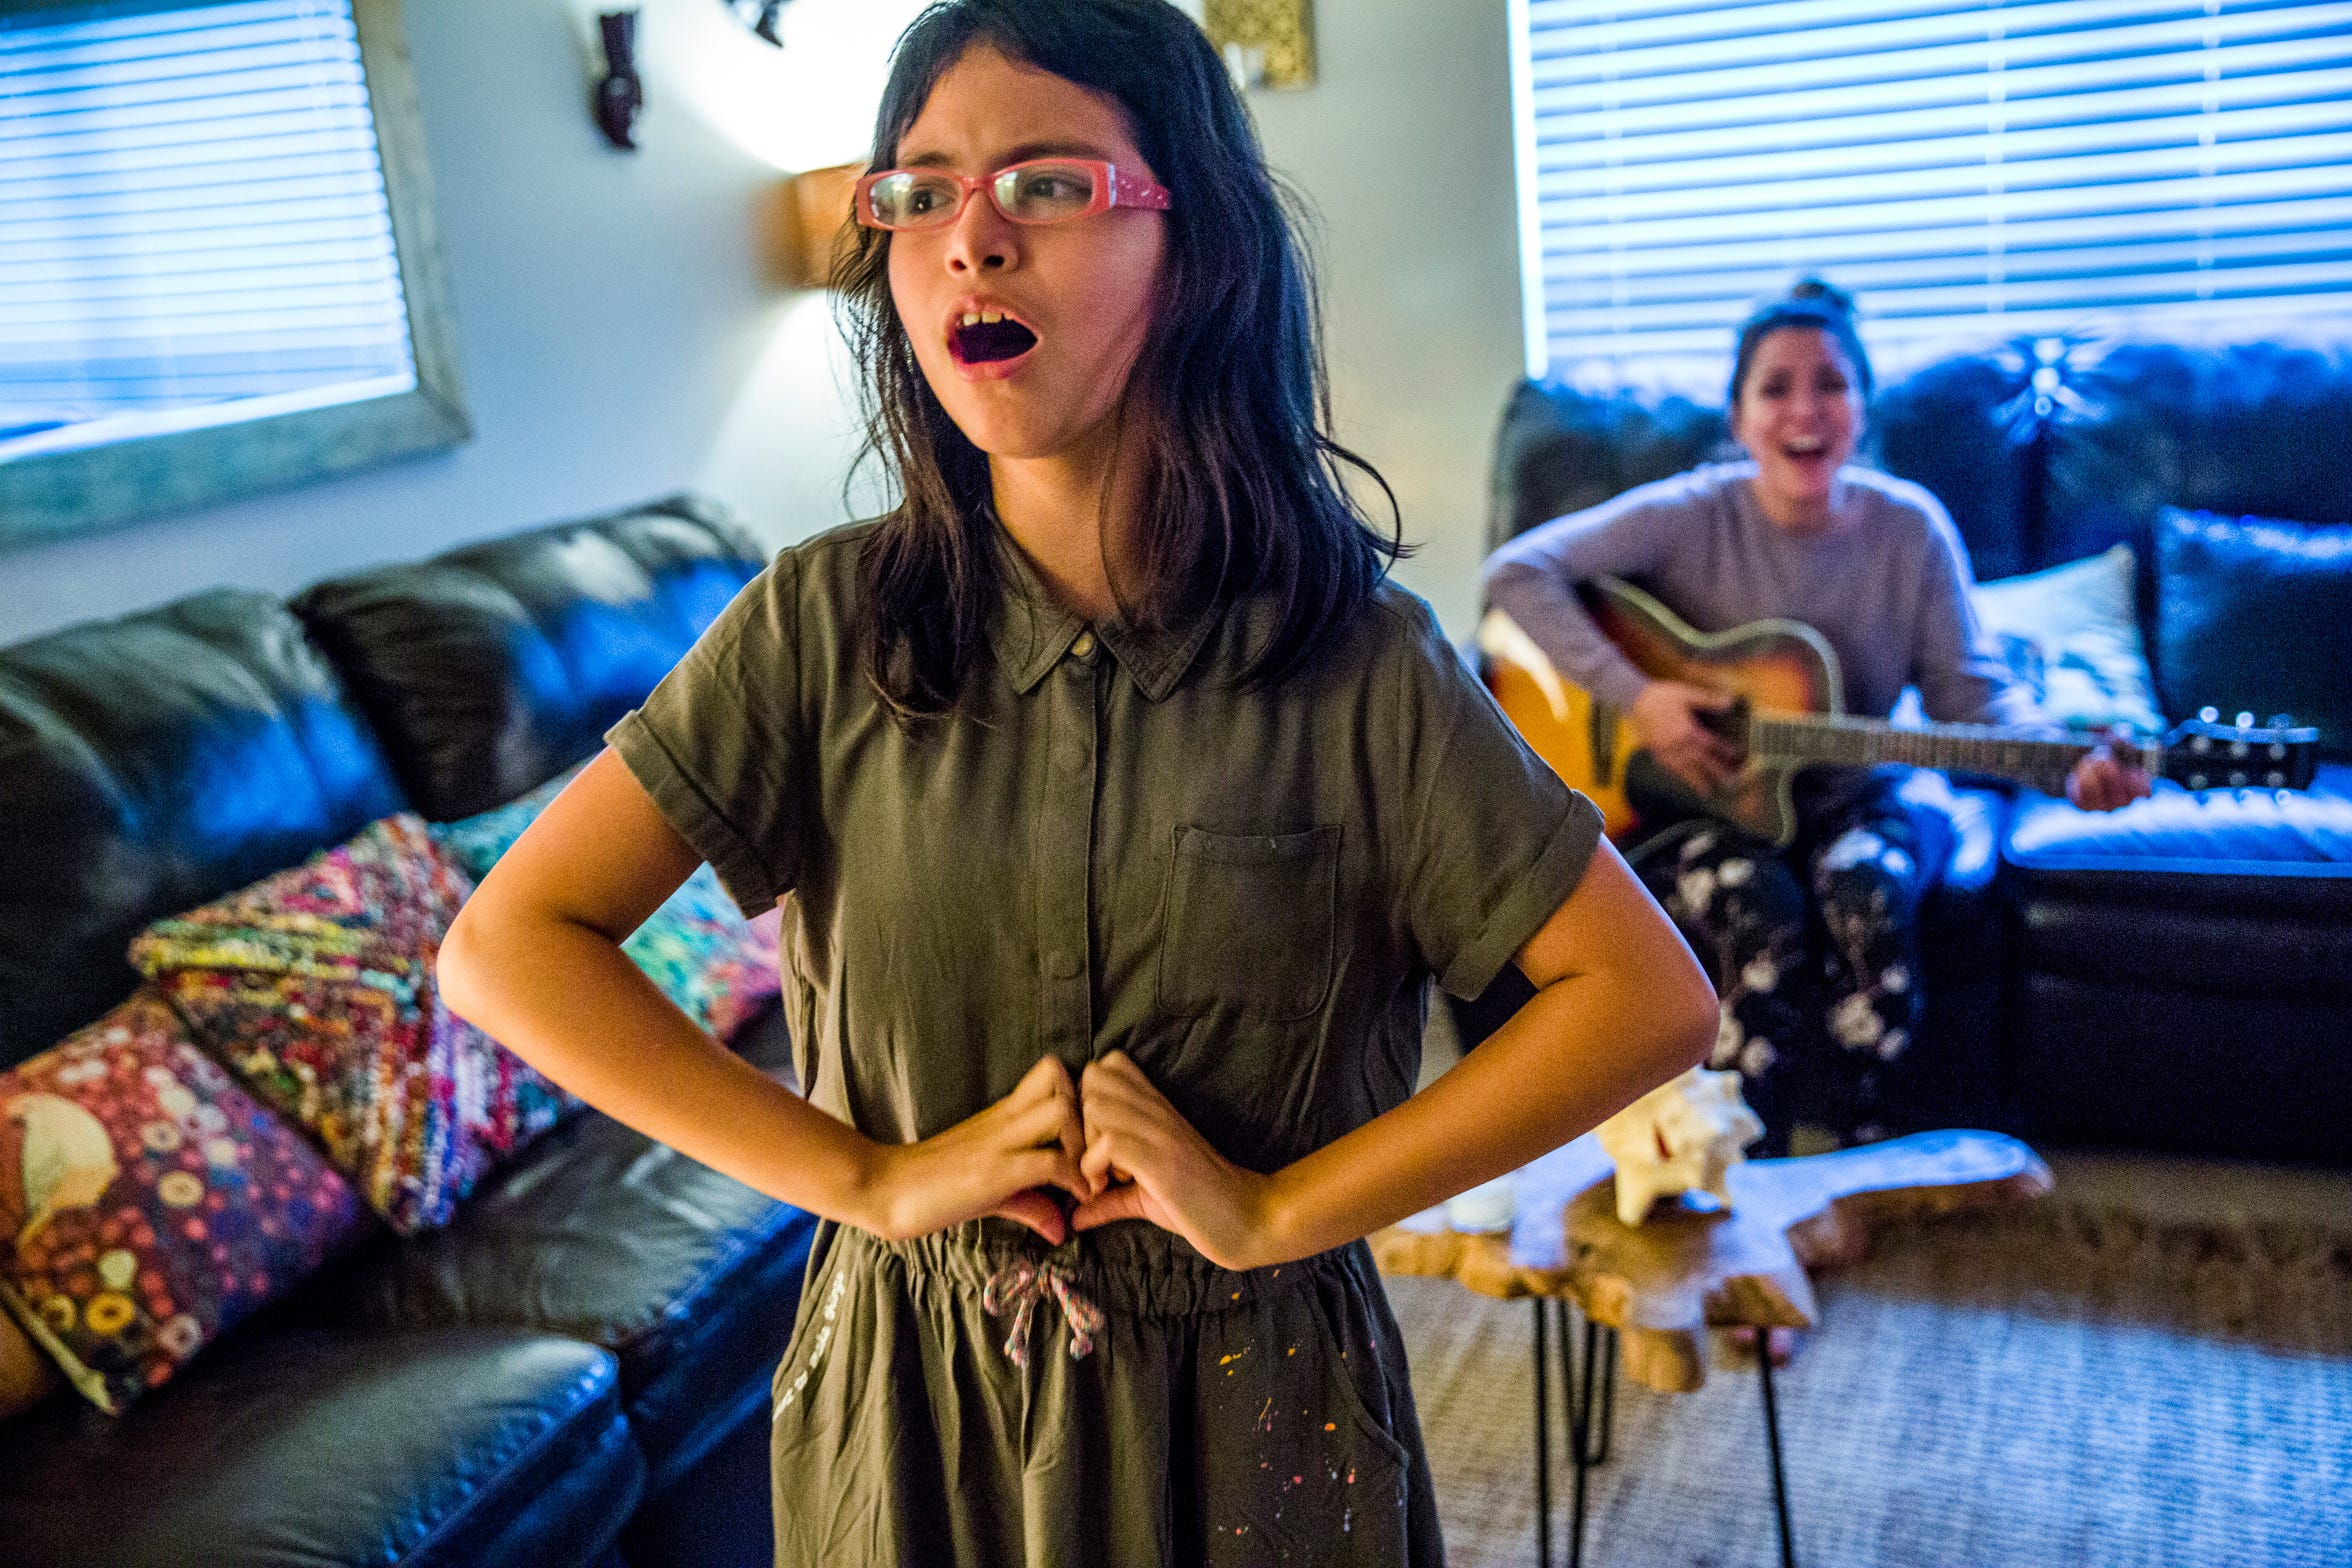 """Camila Chang, 11, sings while her mother, Marcela Guimoye, plays guitar in their North Naples home on Tuesday, Aug. 14, 2018. Music is an integral part of their life together as mother and daughter. Guimoye takes many practices from EndlessBrain and incorporates them into Camila's life at home, and vice versa. """"She's my best friend. Everything I like to do, she likes to do too,"""" Guimoye says."""